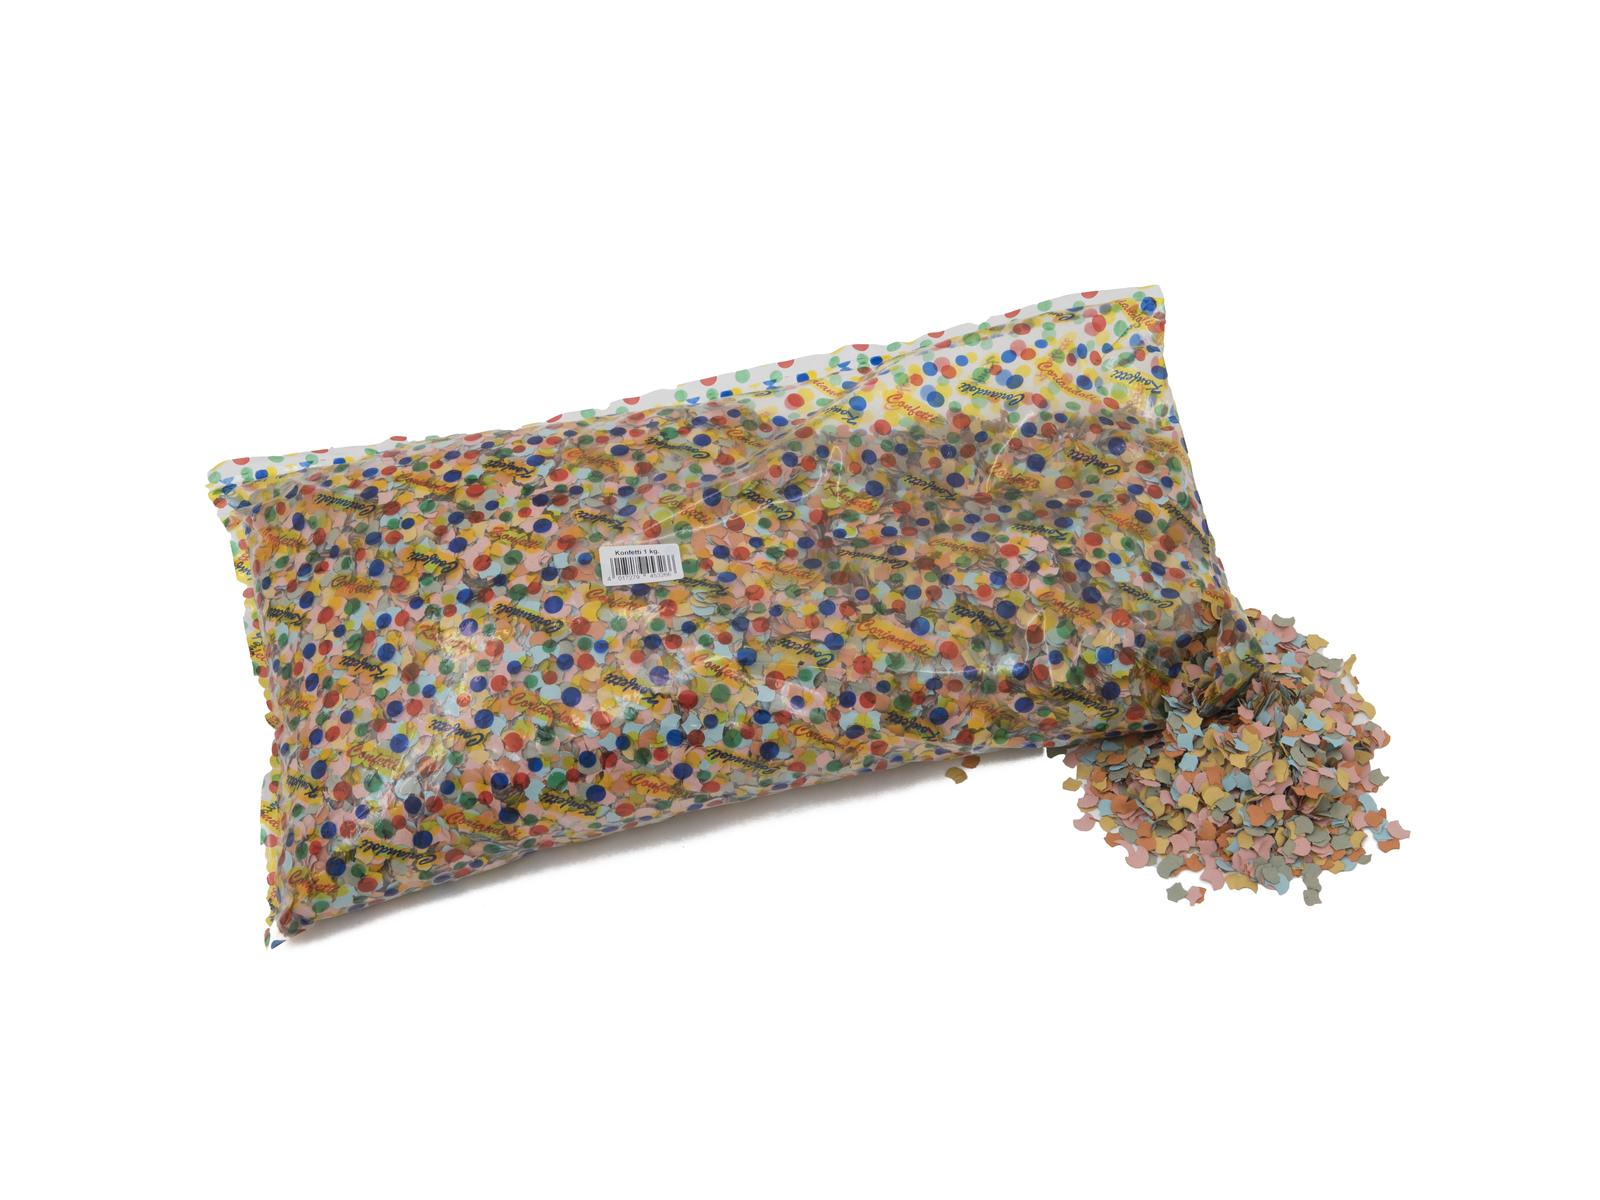 ACCESSORIO Confetti, multicolore, 7mm, 1kg